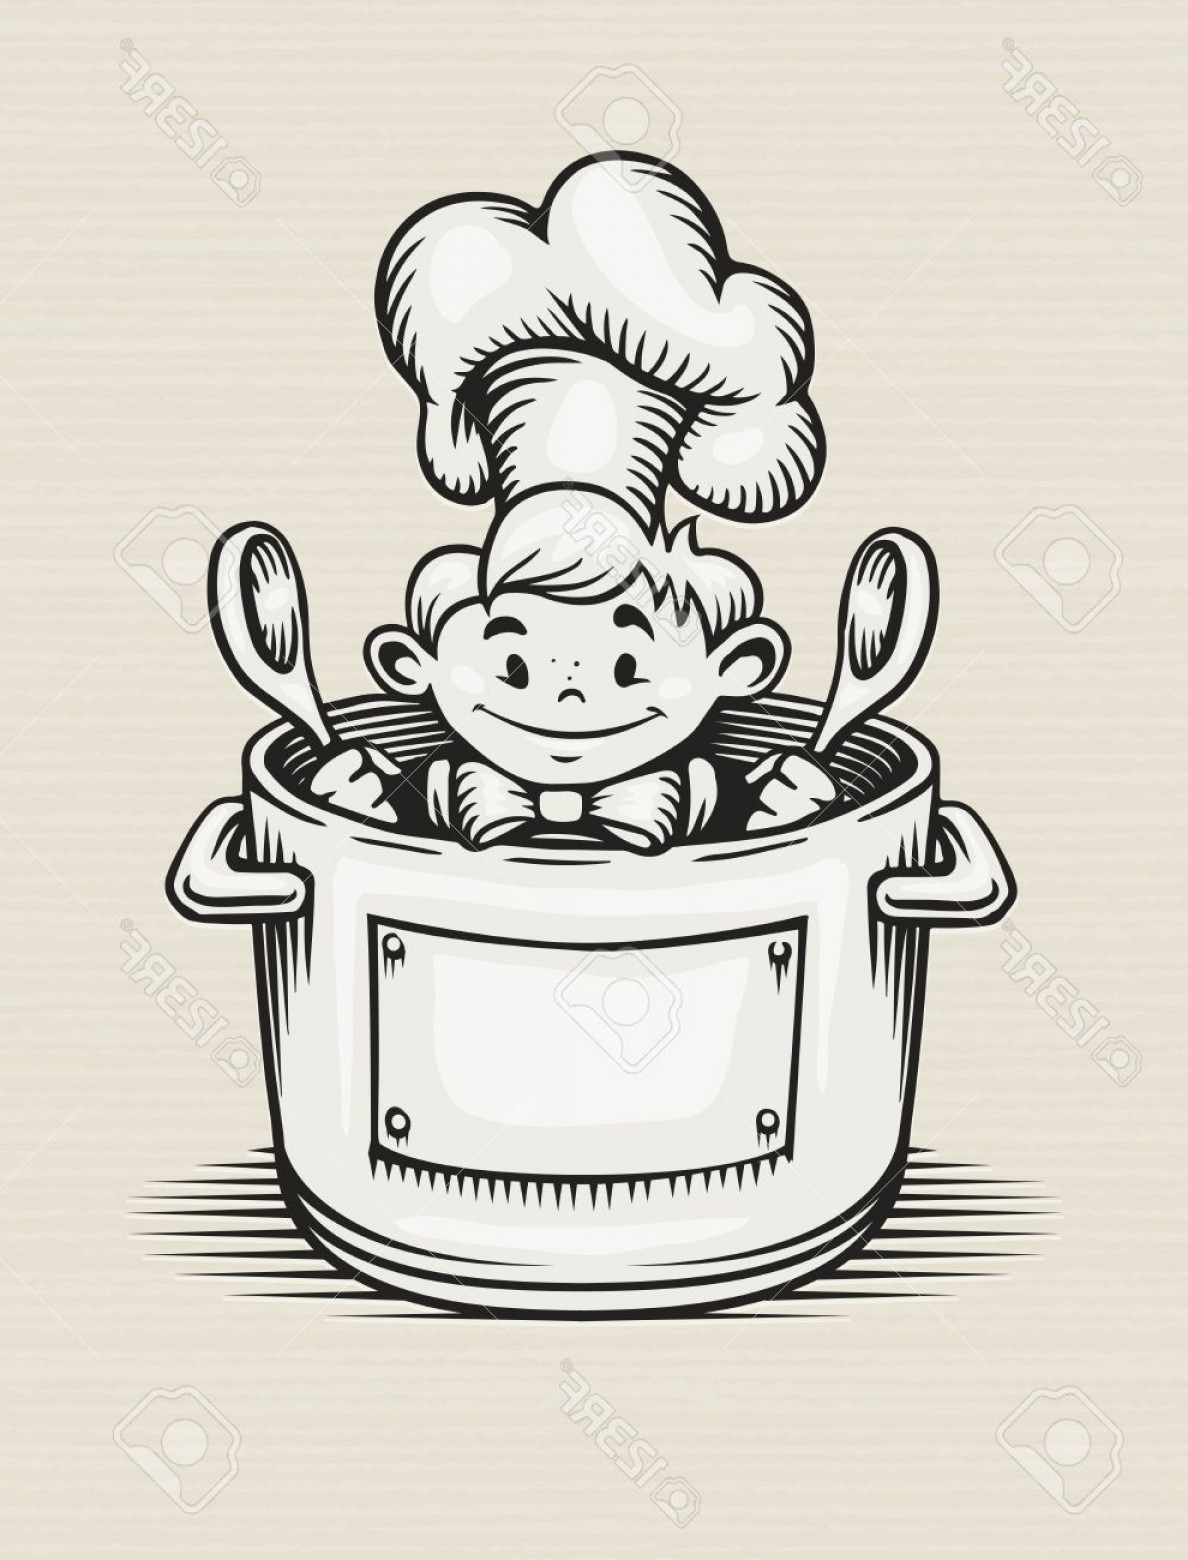 Big Cook With Cooking Pot Vector: Photosmiling Boy Cooking In The Kitchen Sitting In The Pot With Two Big Spoons In His Hands Eps Vector